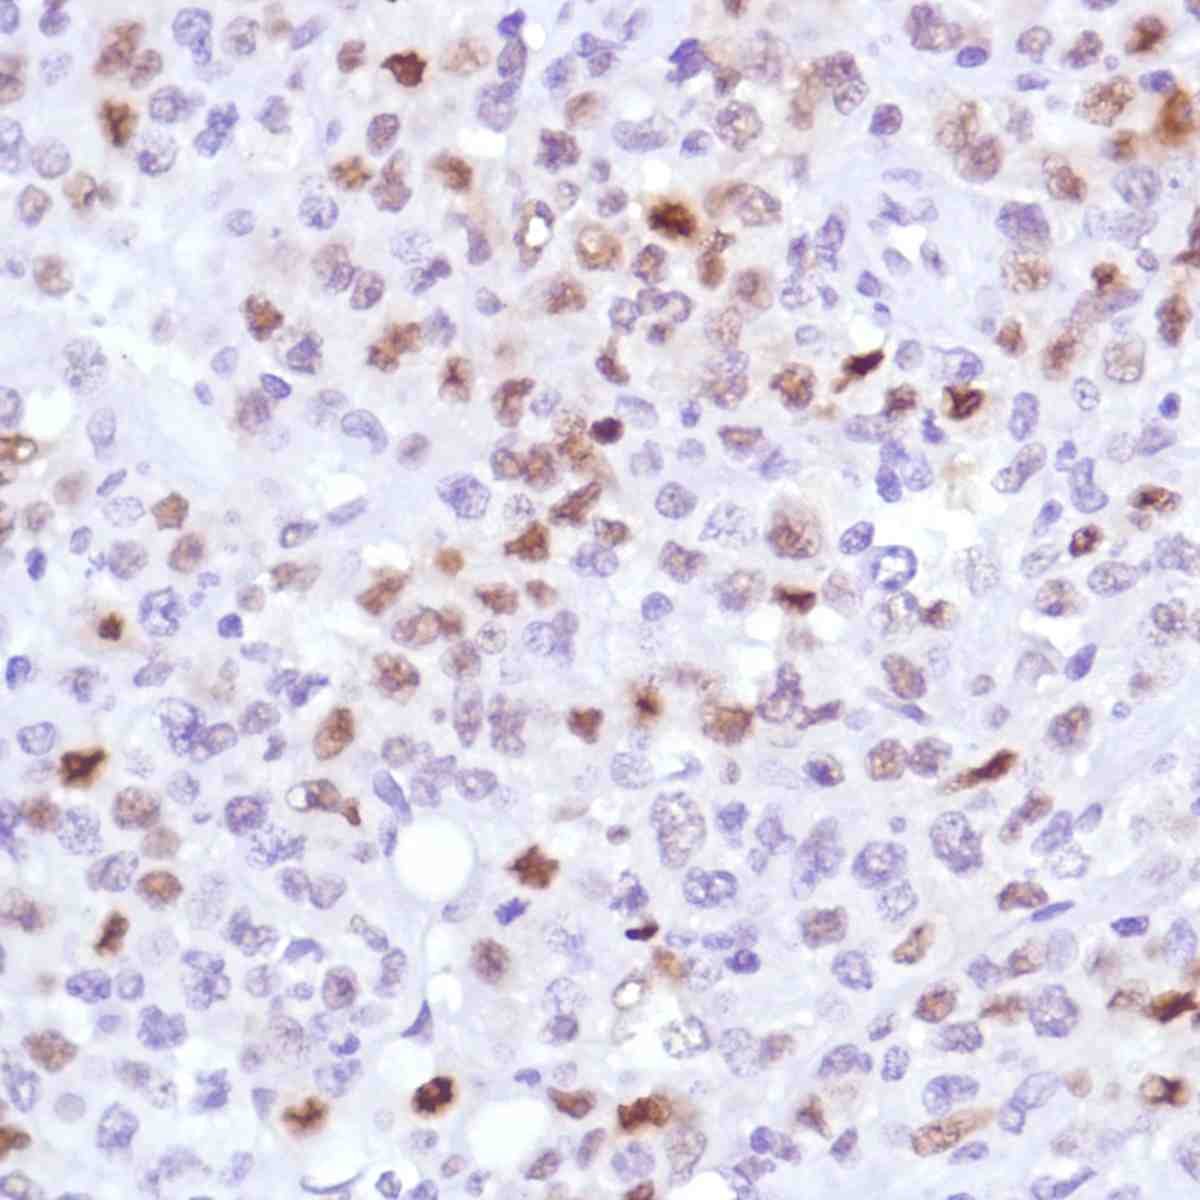 Human B-Cell Lymphoma stained with anti-Cyclin D3 antibody